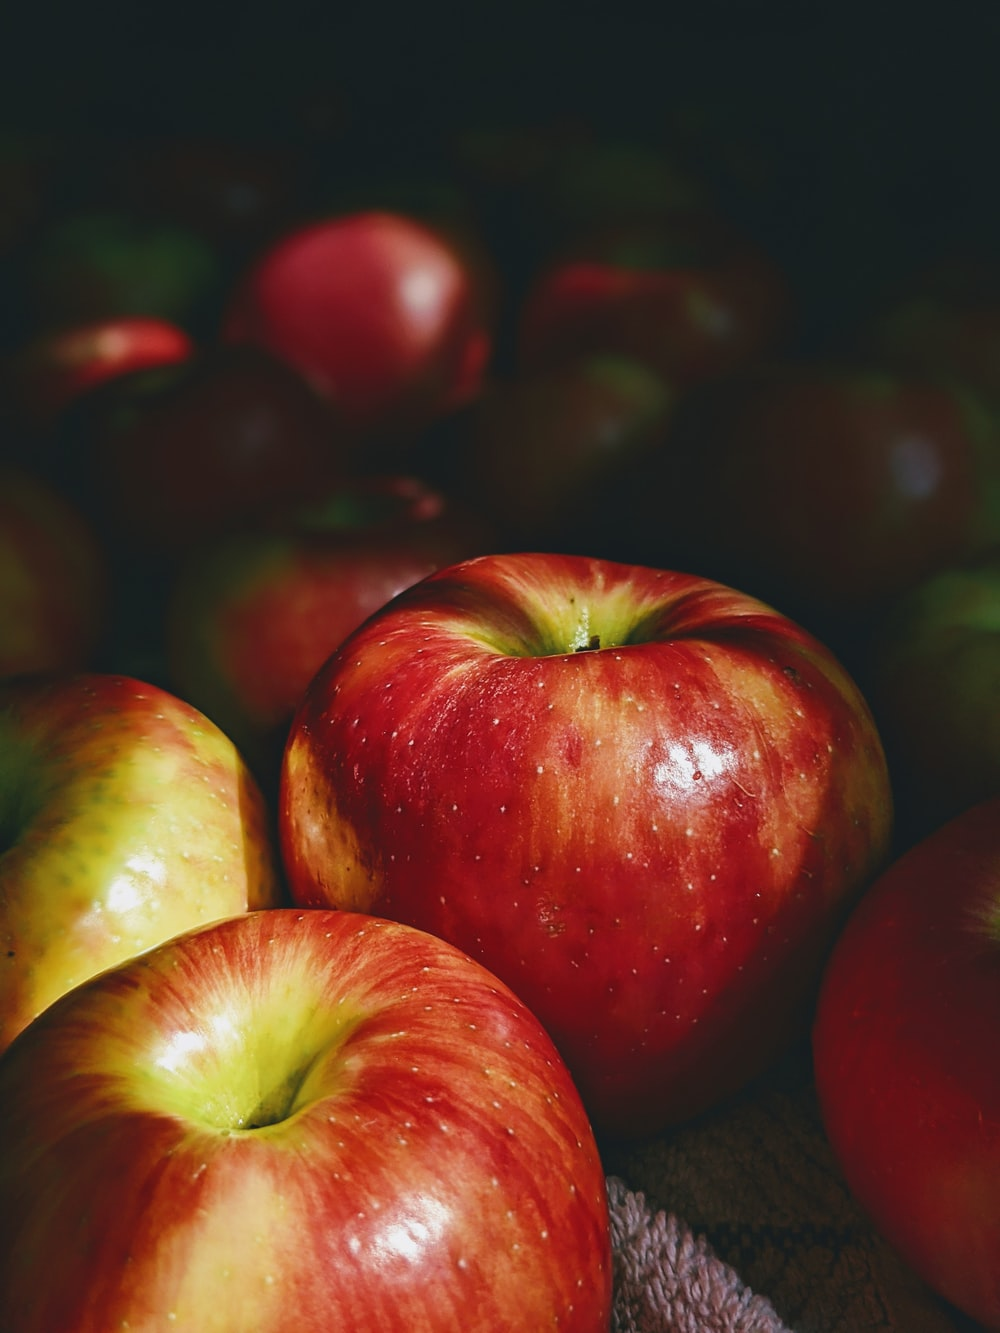 red and green apples on black surface